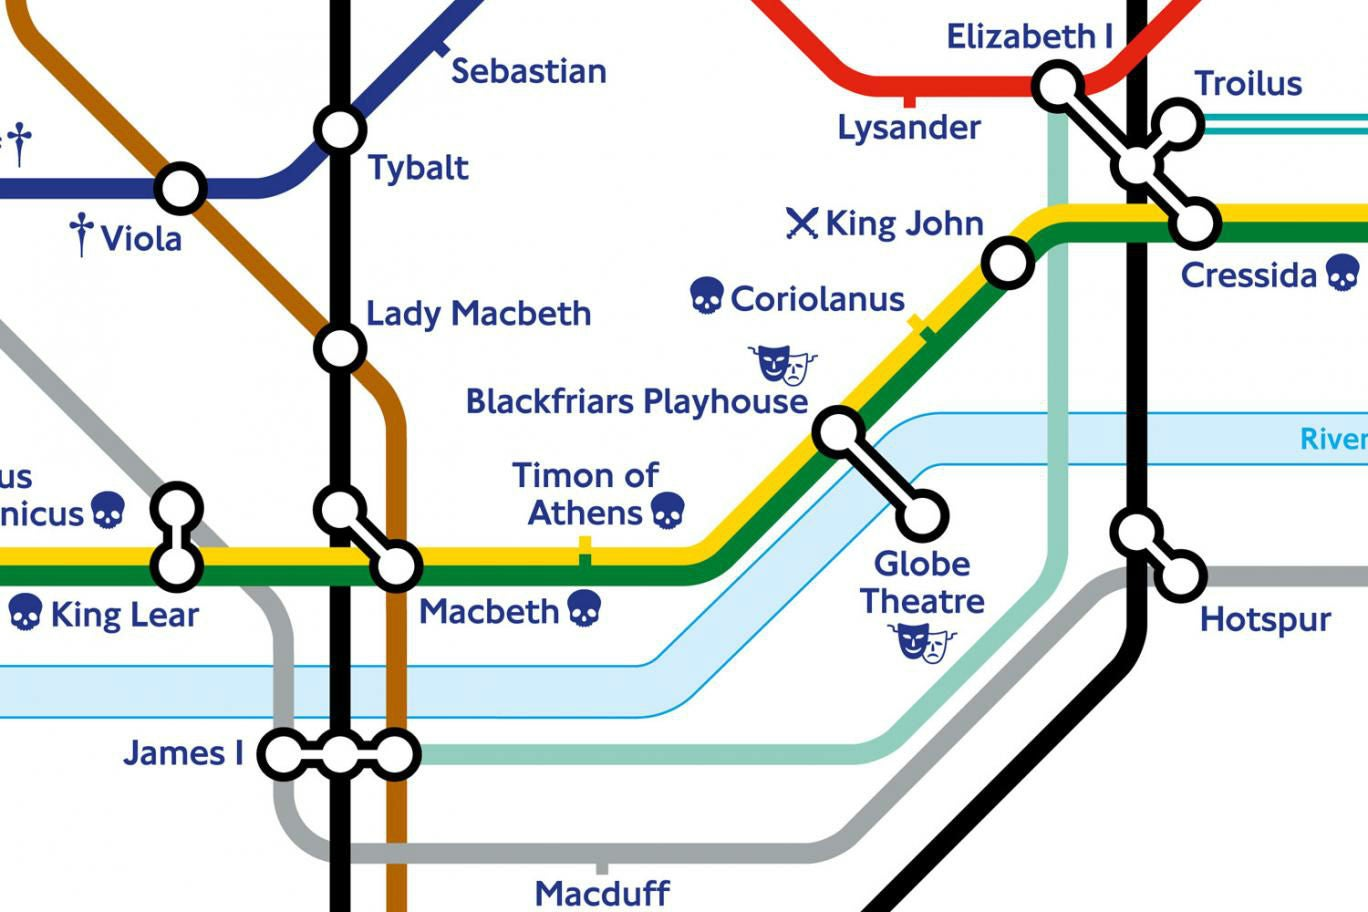 William Shakespeare London Underground map given makeover for – Uk Tube Map London